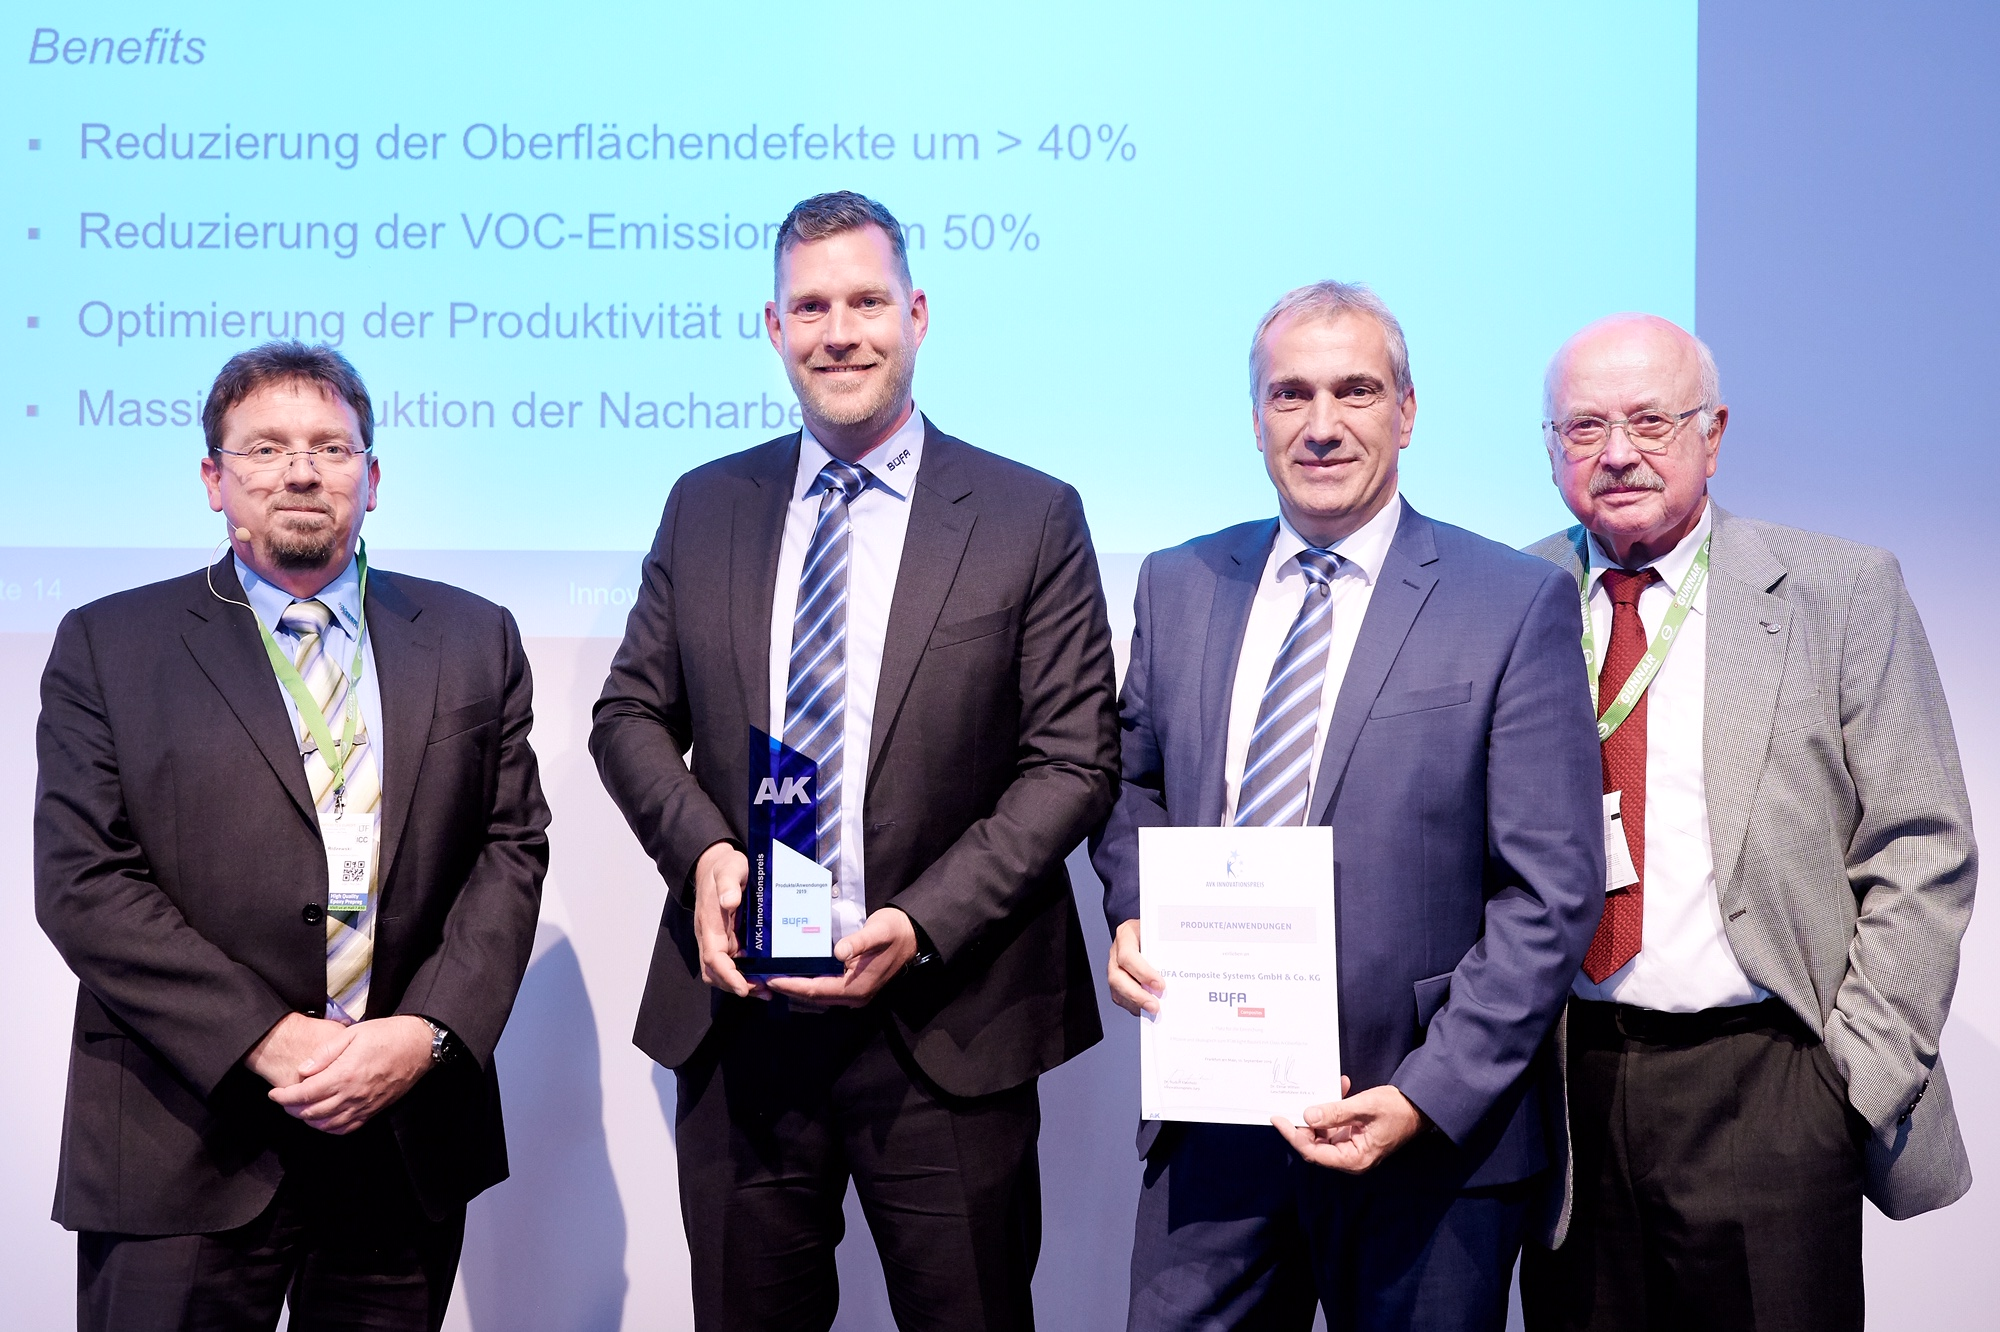 BÜFA Composite Systems erhält erneut AVK Innovationspreis